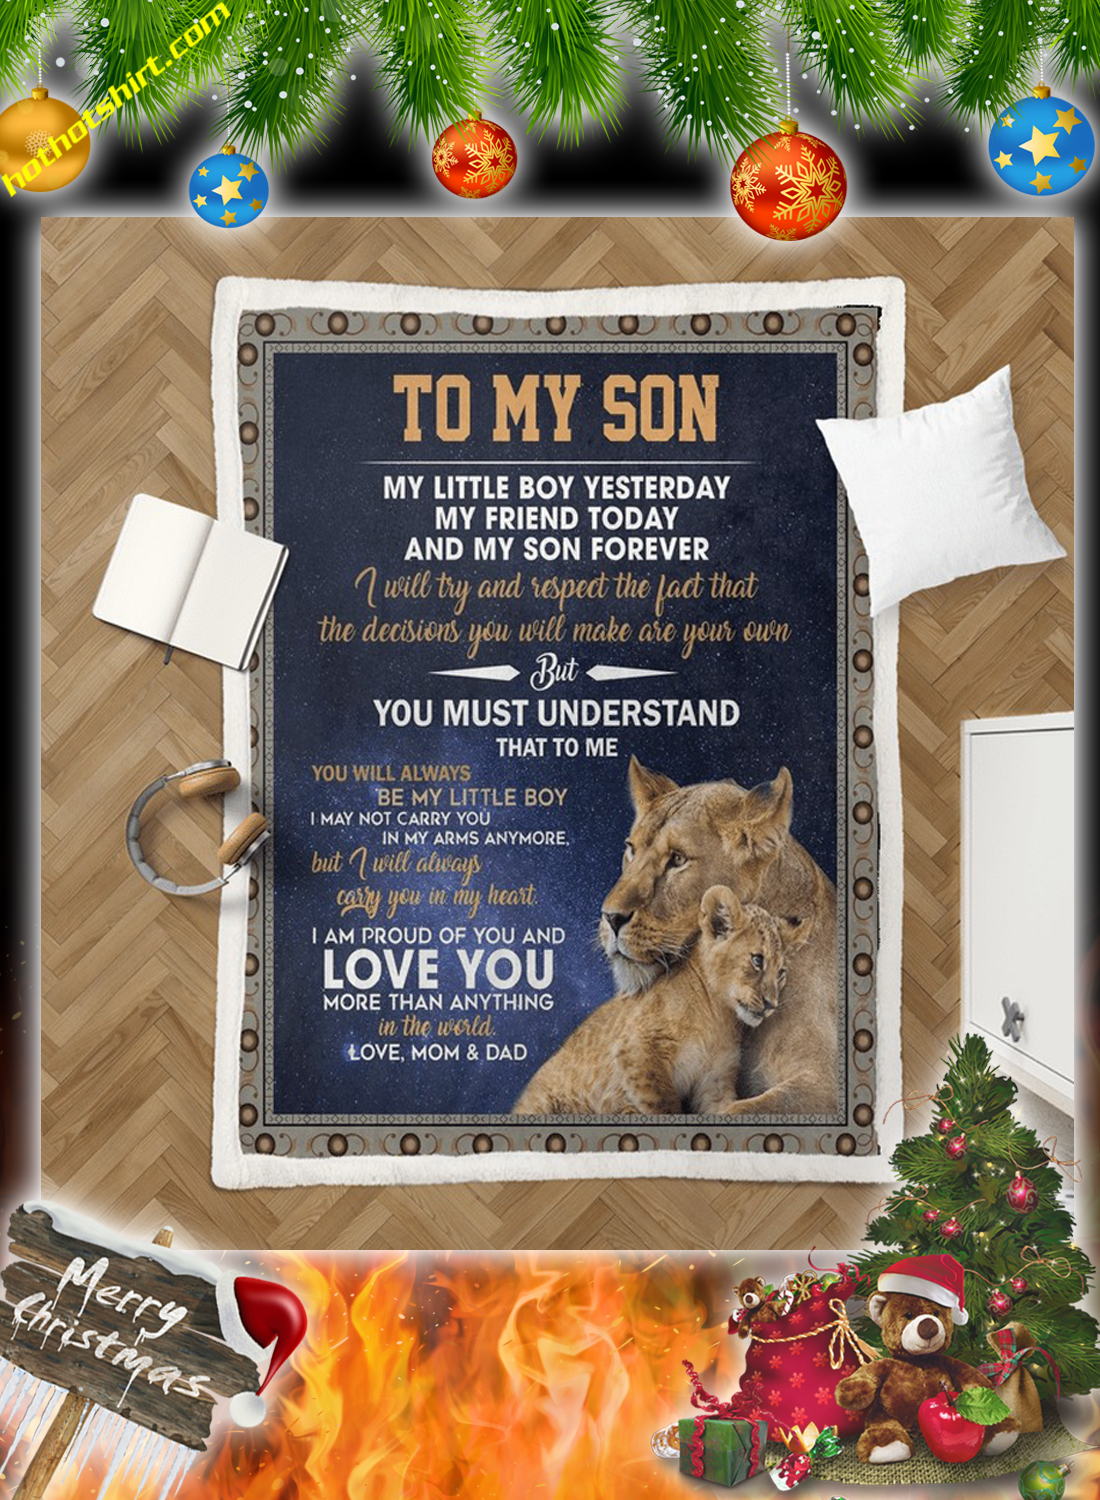 Lion To my son love mom and dad quilt 2